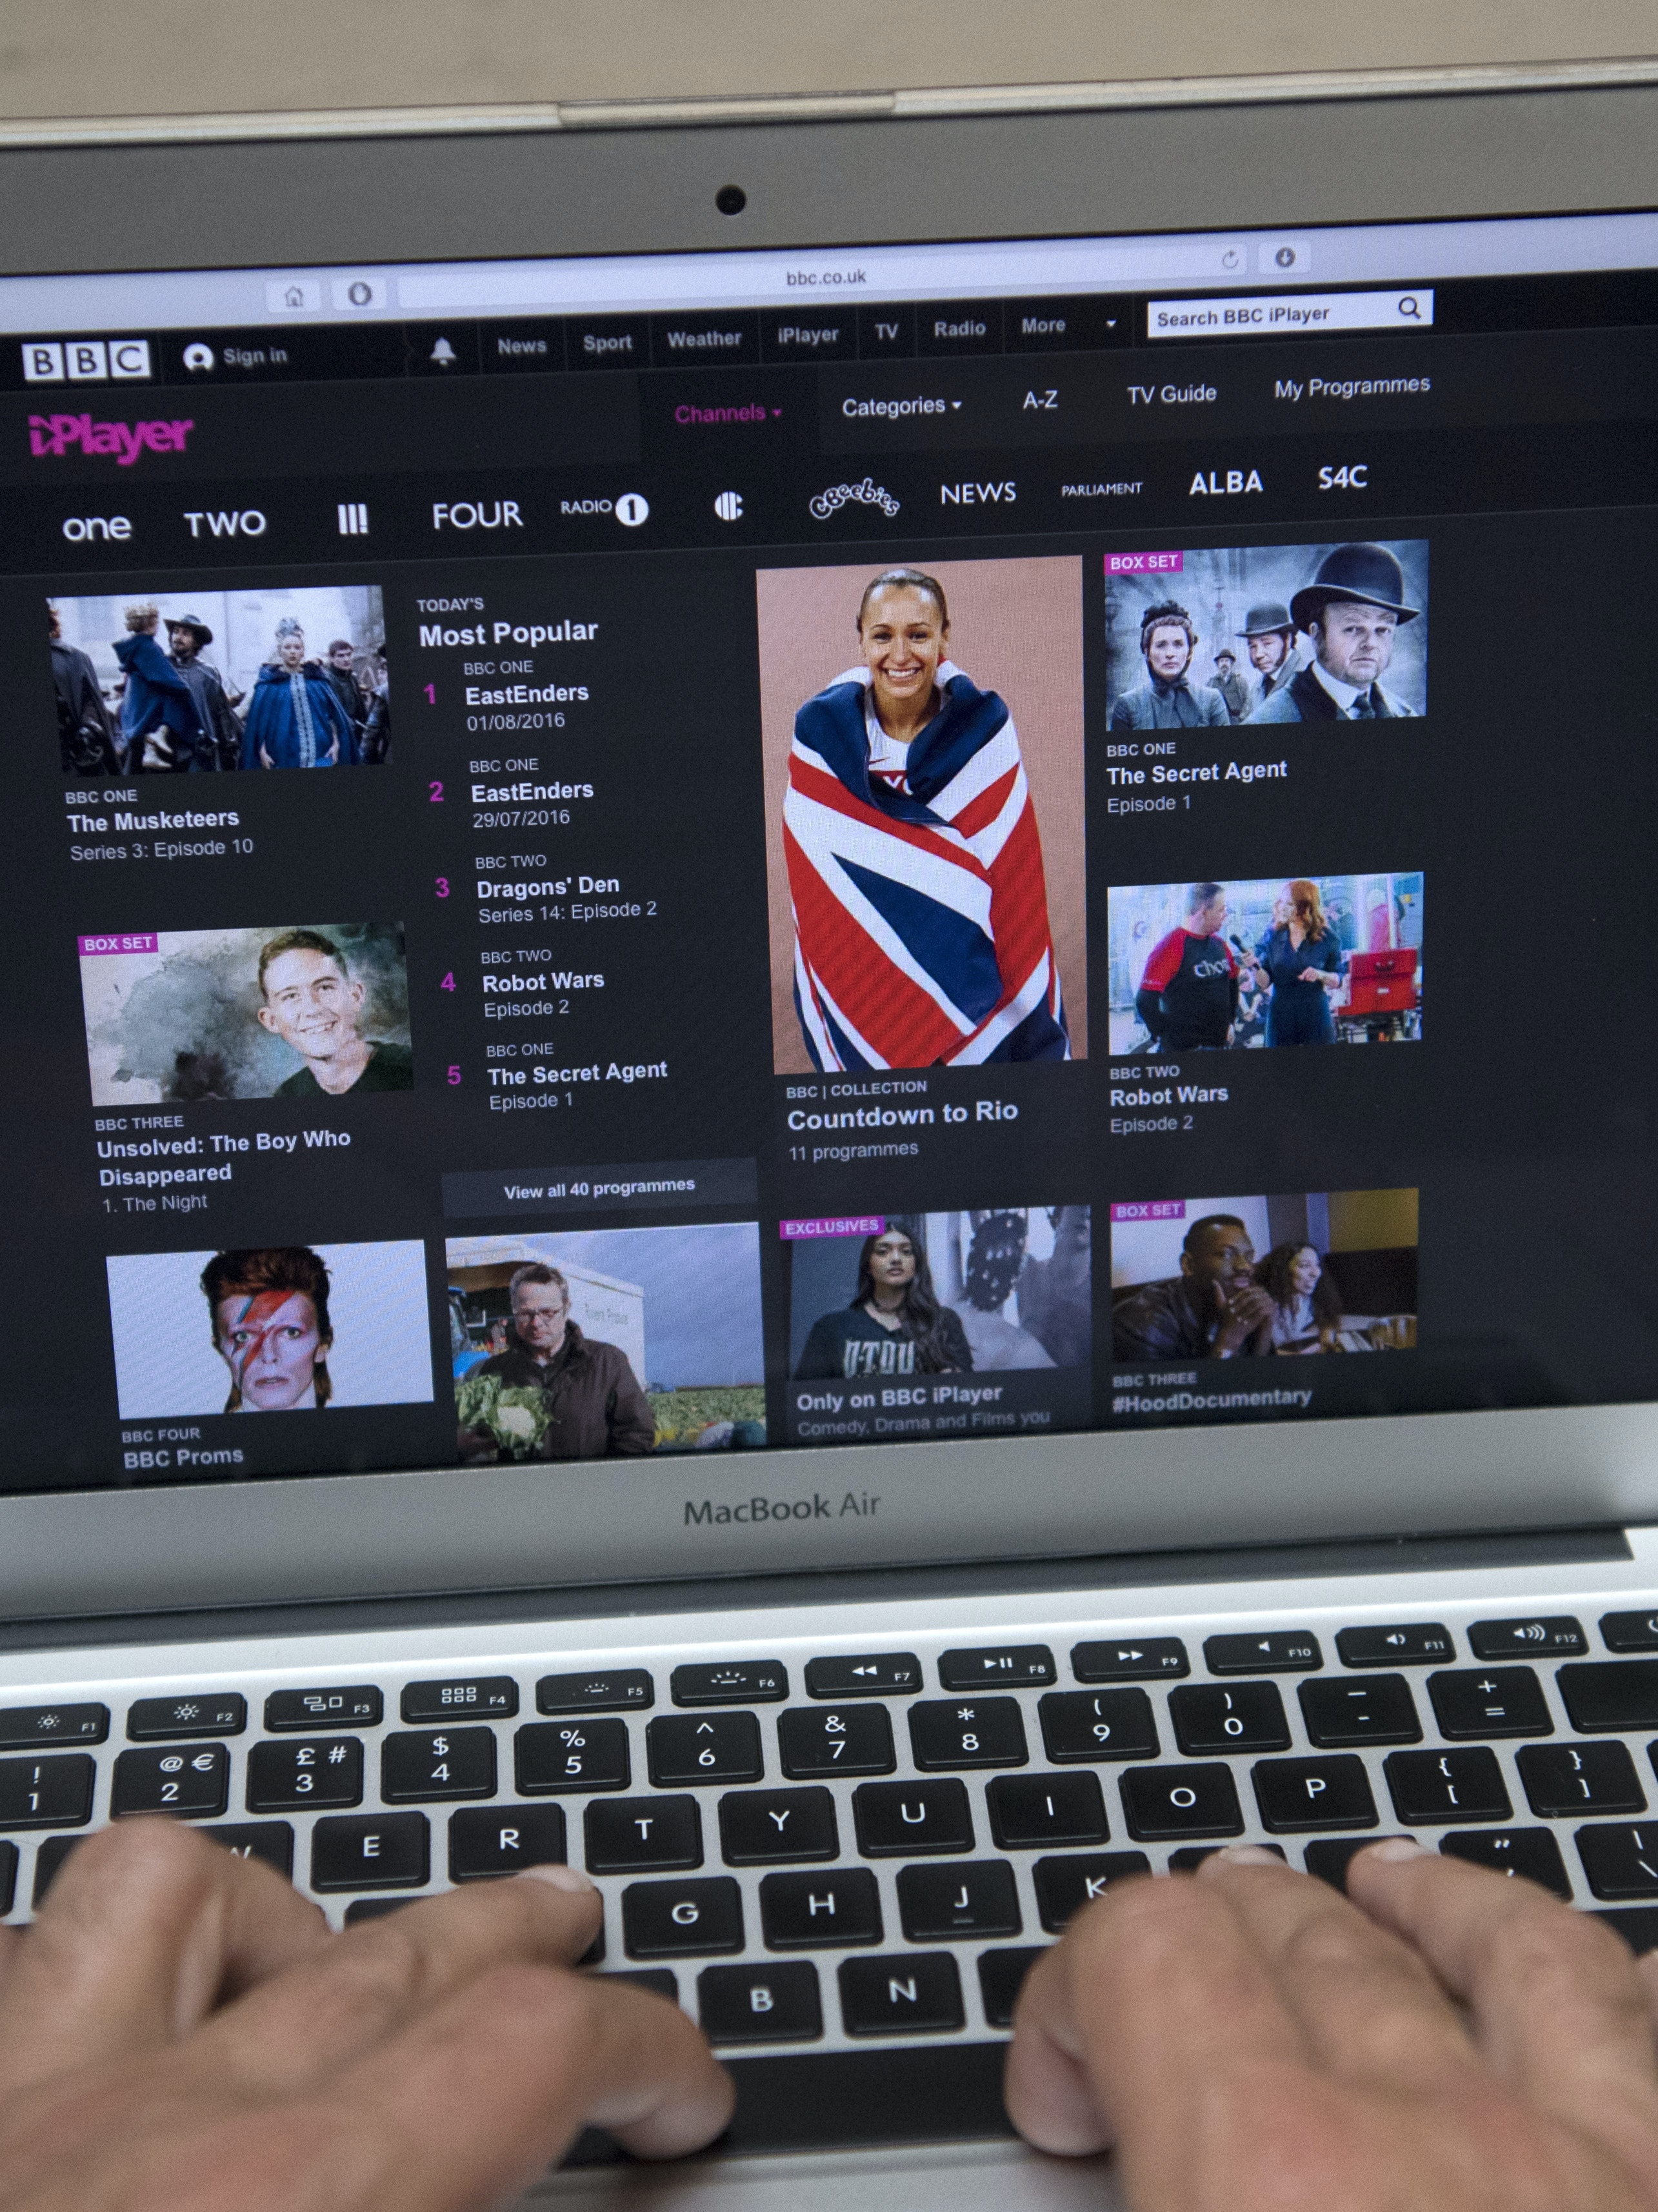 LONDON, ENGLAND - AUGUST 02:  In this photo illustration, the BBC iPlayer app is displayed on a laptop screen as hands touch its keyboard on August 2, 2016 in London, England. The BBC has announced that iPlayer users will have to pay a 145GBP TV licence fee from 1 September.  (Photo Illustration by Carl Court/Getty Images)